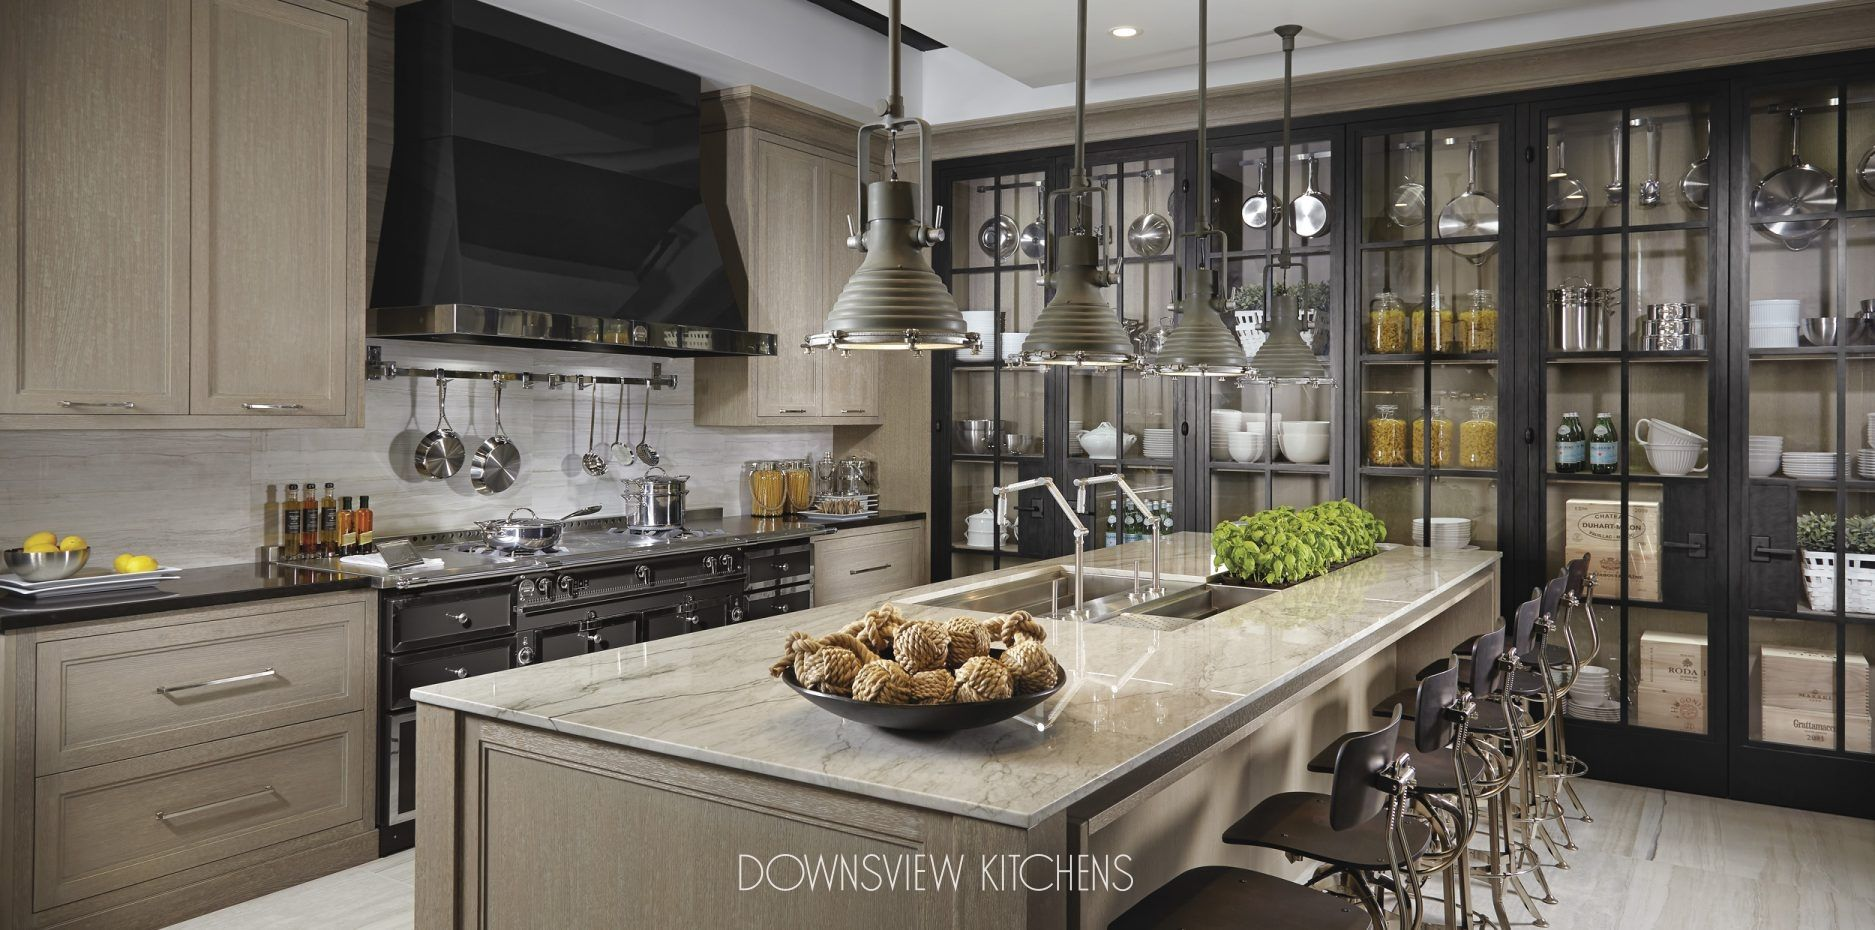 High Quality INDUSTRIAL CHIC   Downsview Kitchens And Fine Custom Cabinetry    Manufacturers Of Custom Kitchen Cabinets